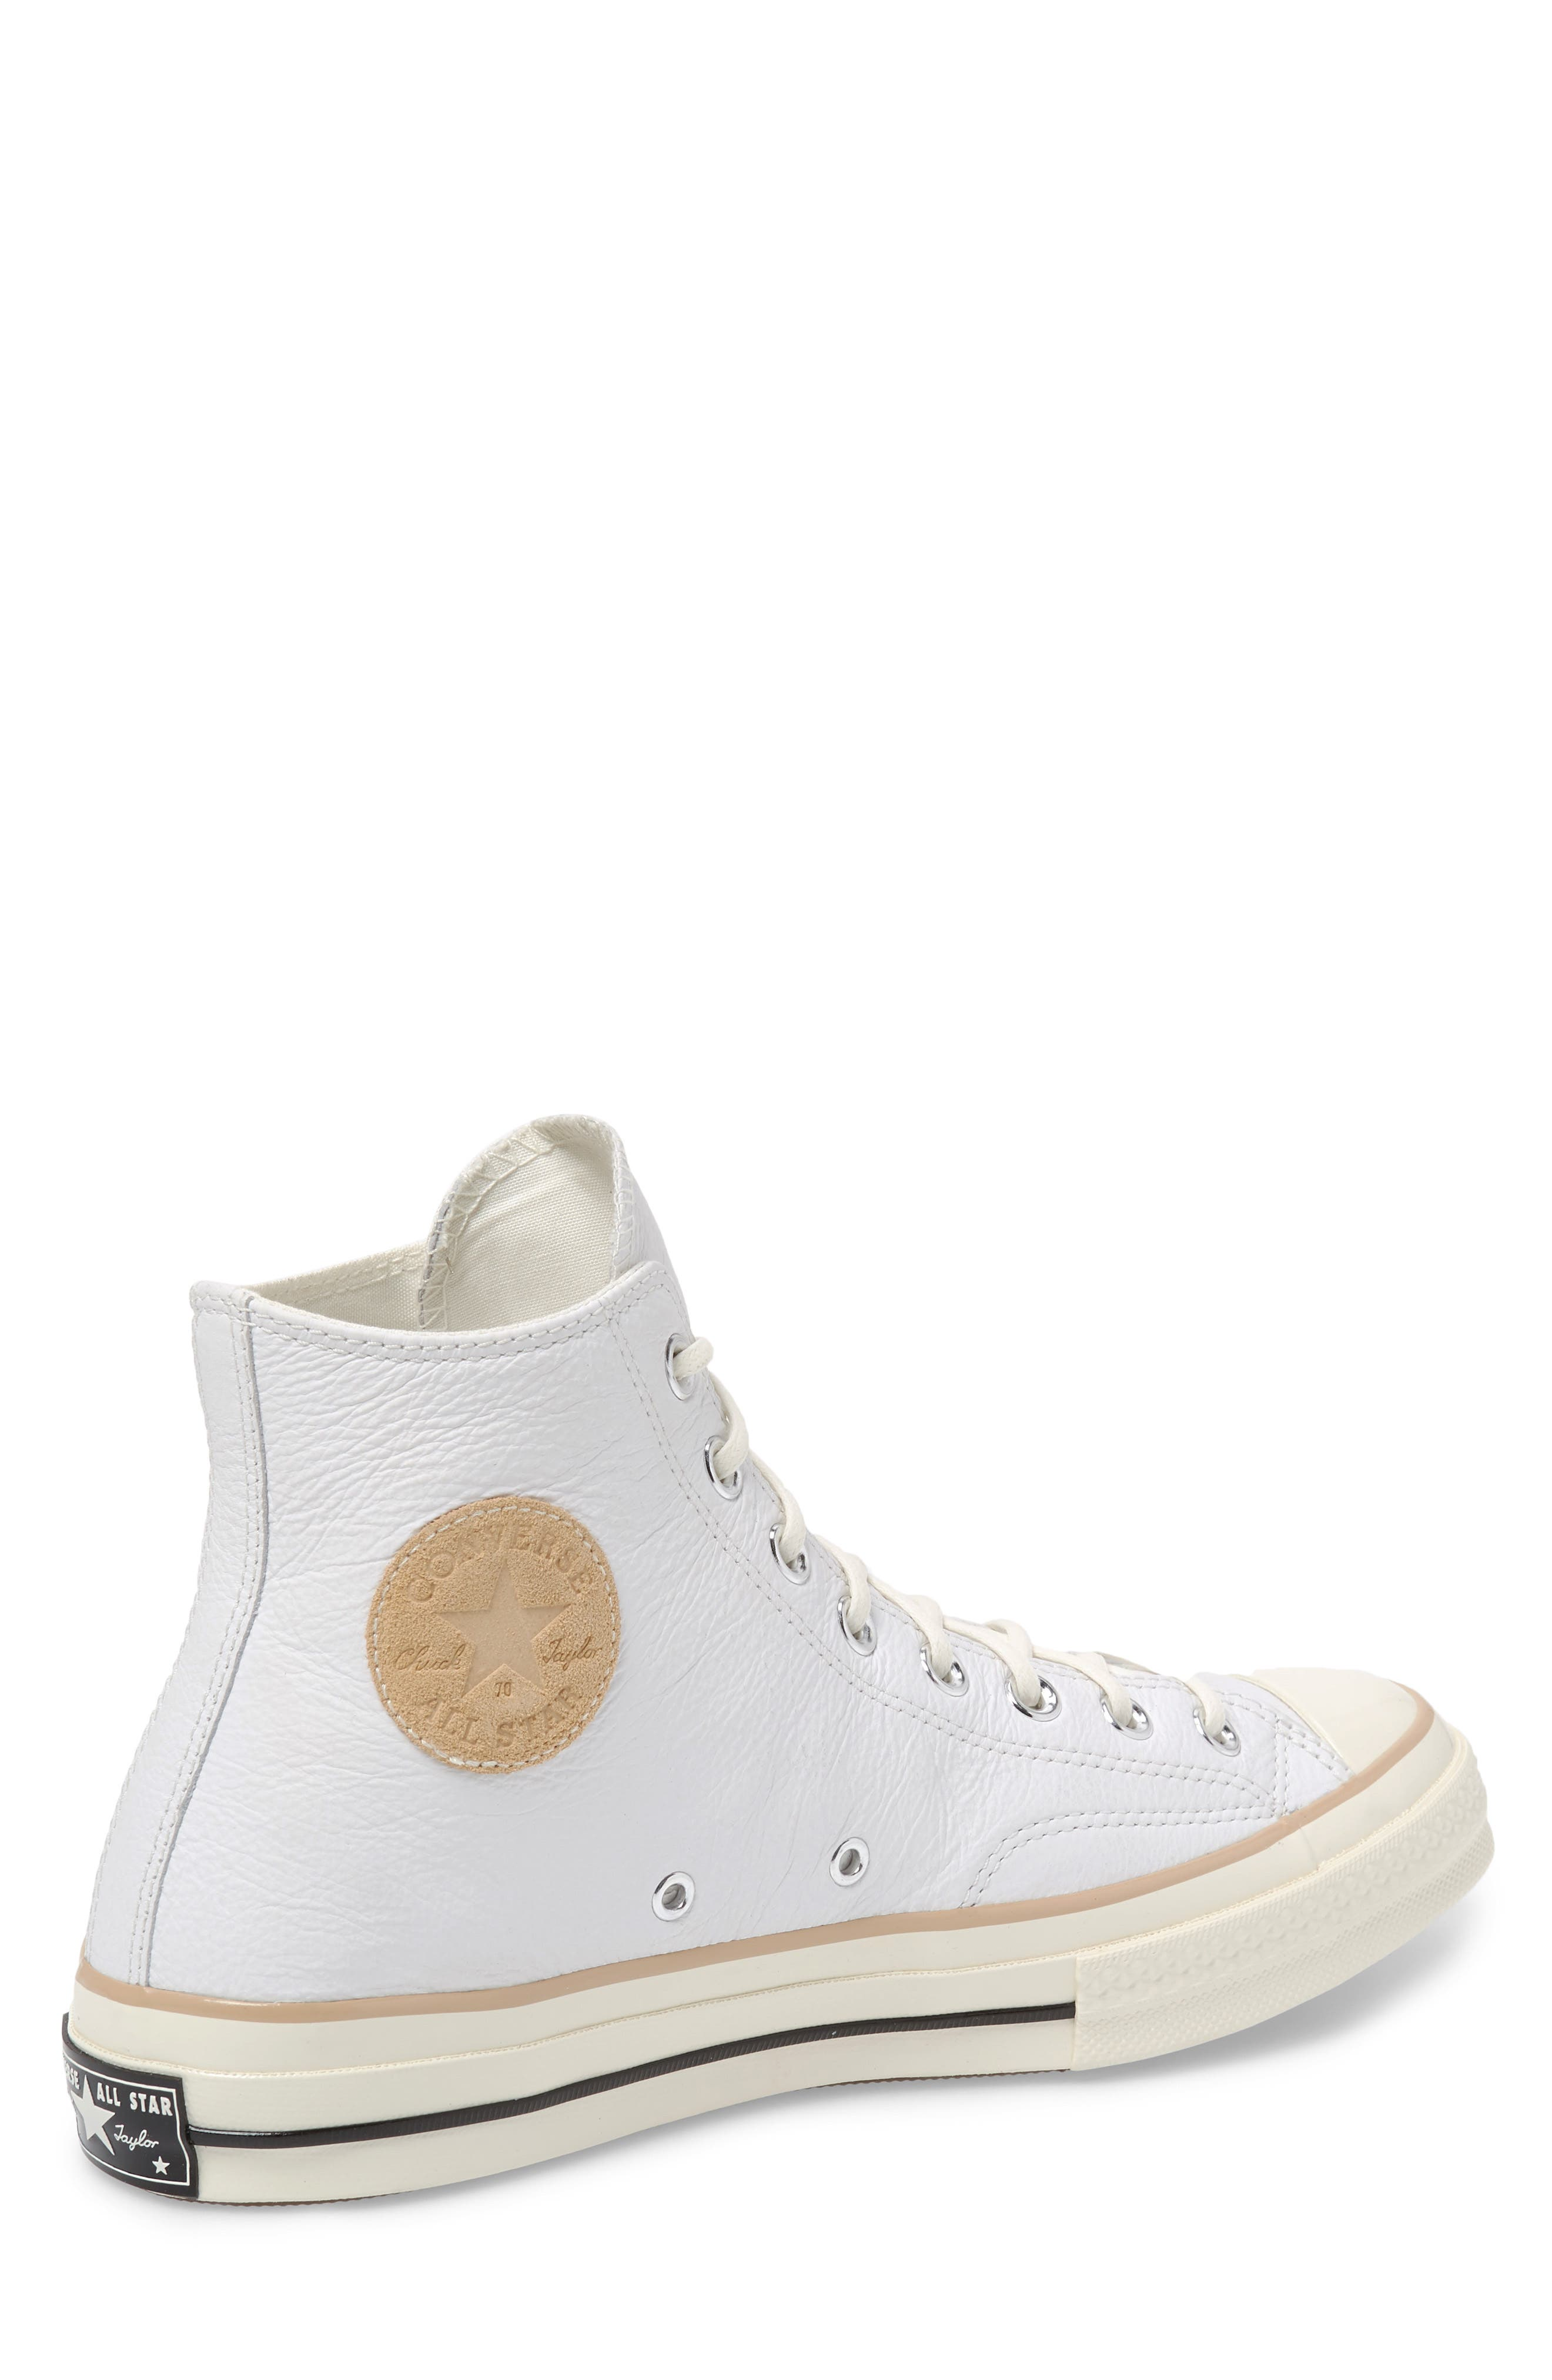 Chuck 70 Boot Leather High Top Sneaker,                             Alternate thumbnail 2, color,                             WHITE/ LIGHT FAWN/ EGRET